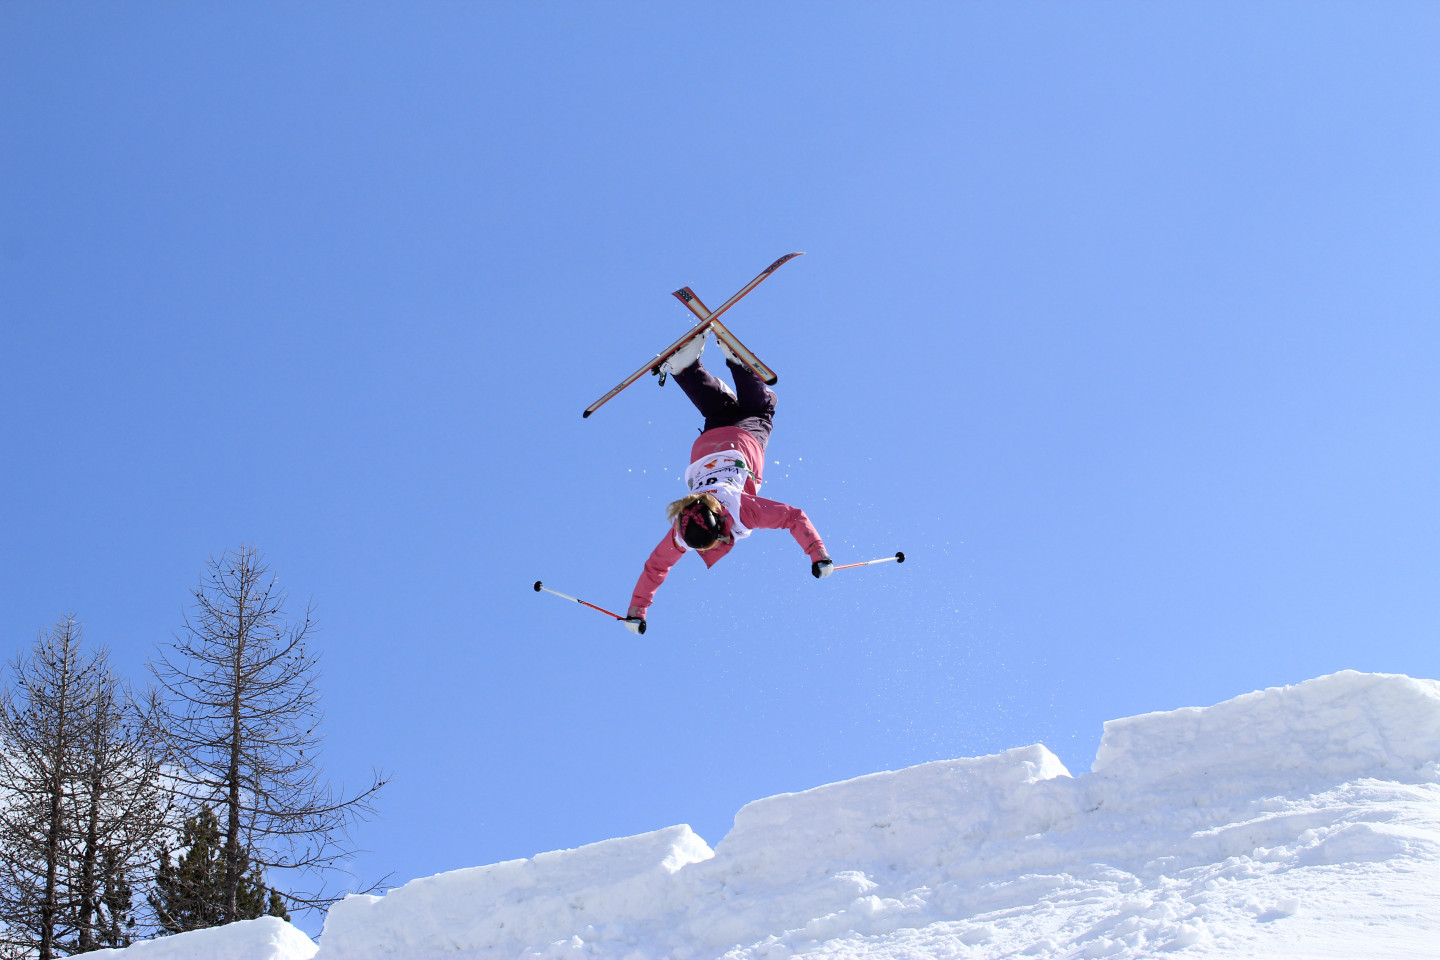 Freestyle skiing at the Palù park in Valmalenco